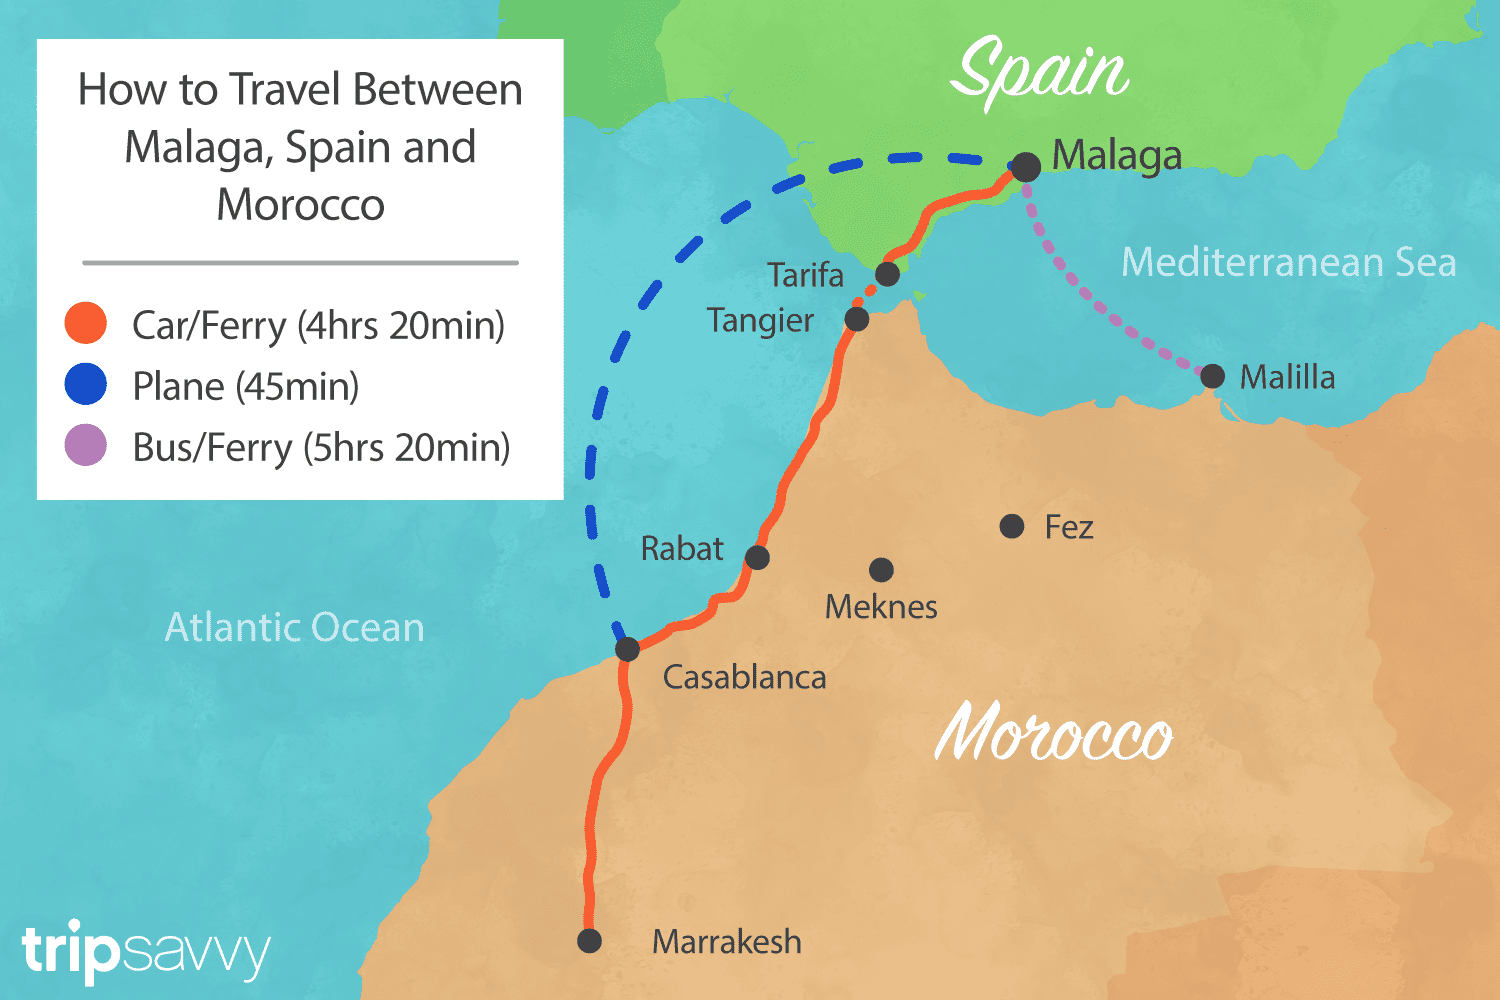 Illustration showing different modes of transportation between Malaga and Morocco